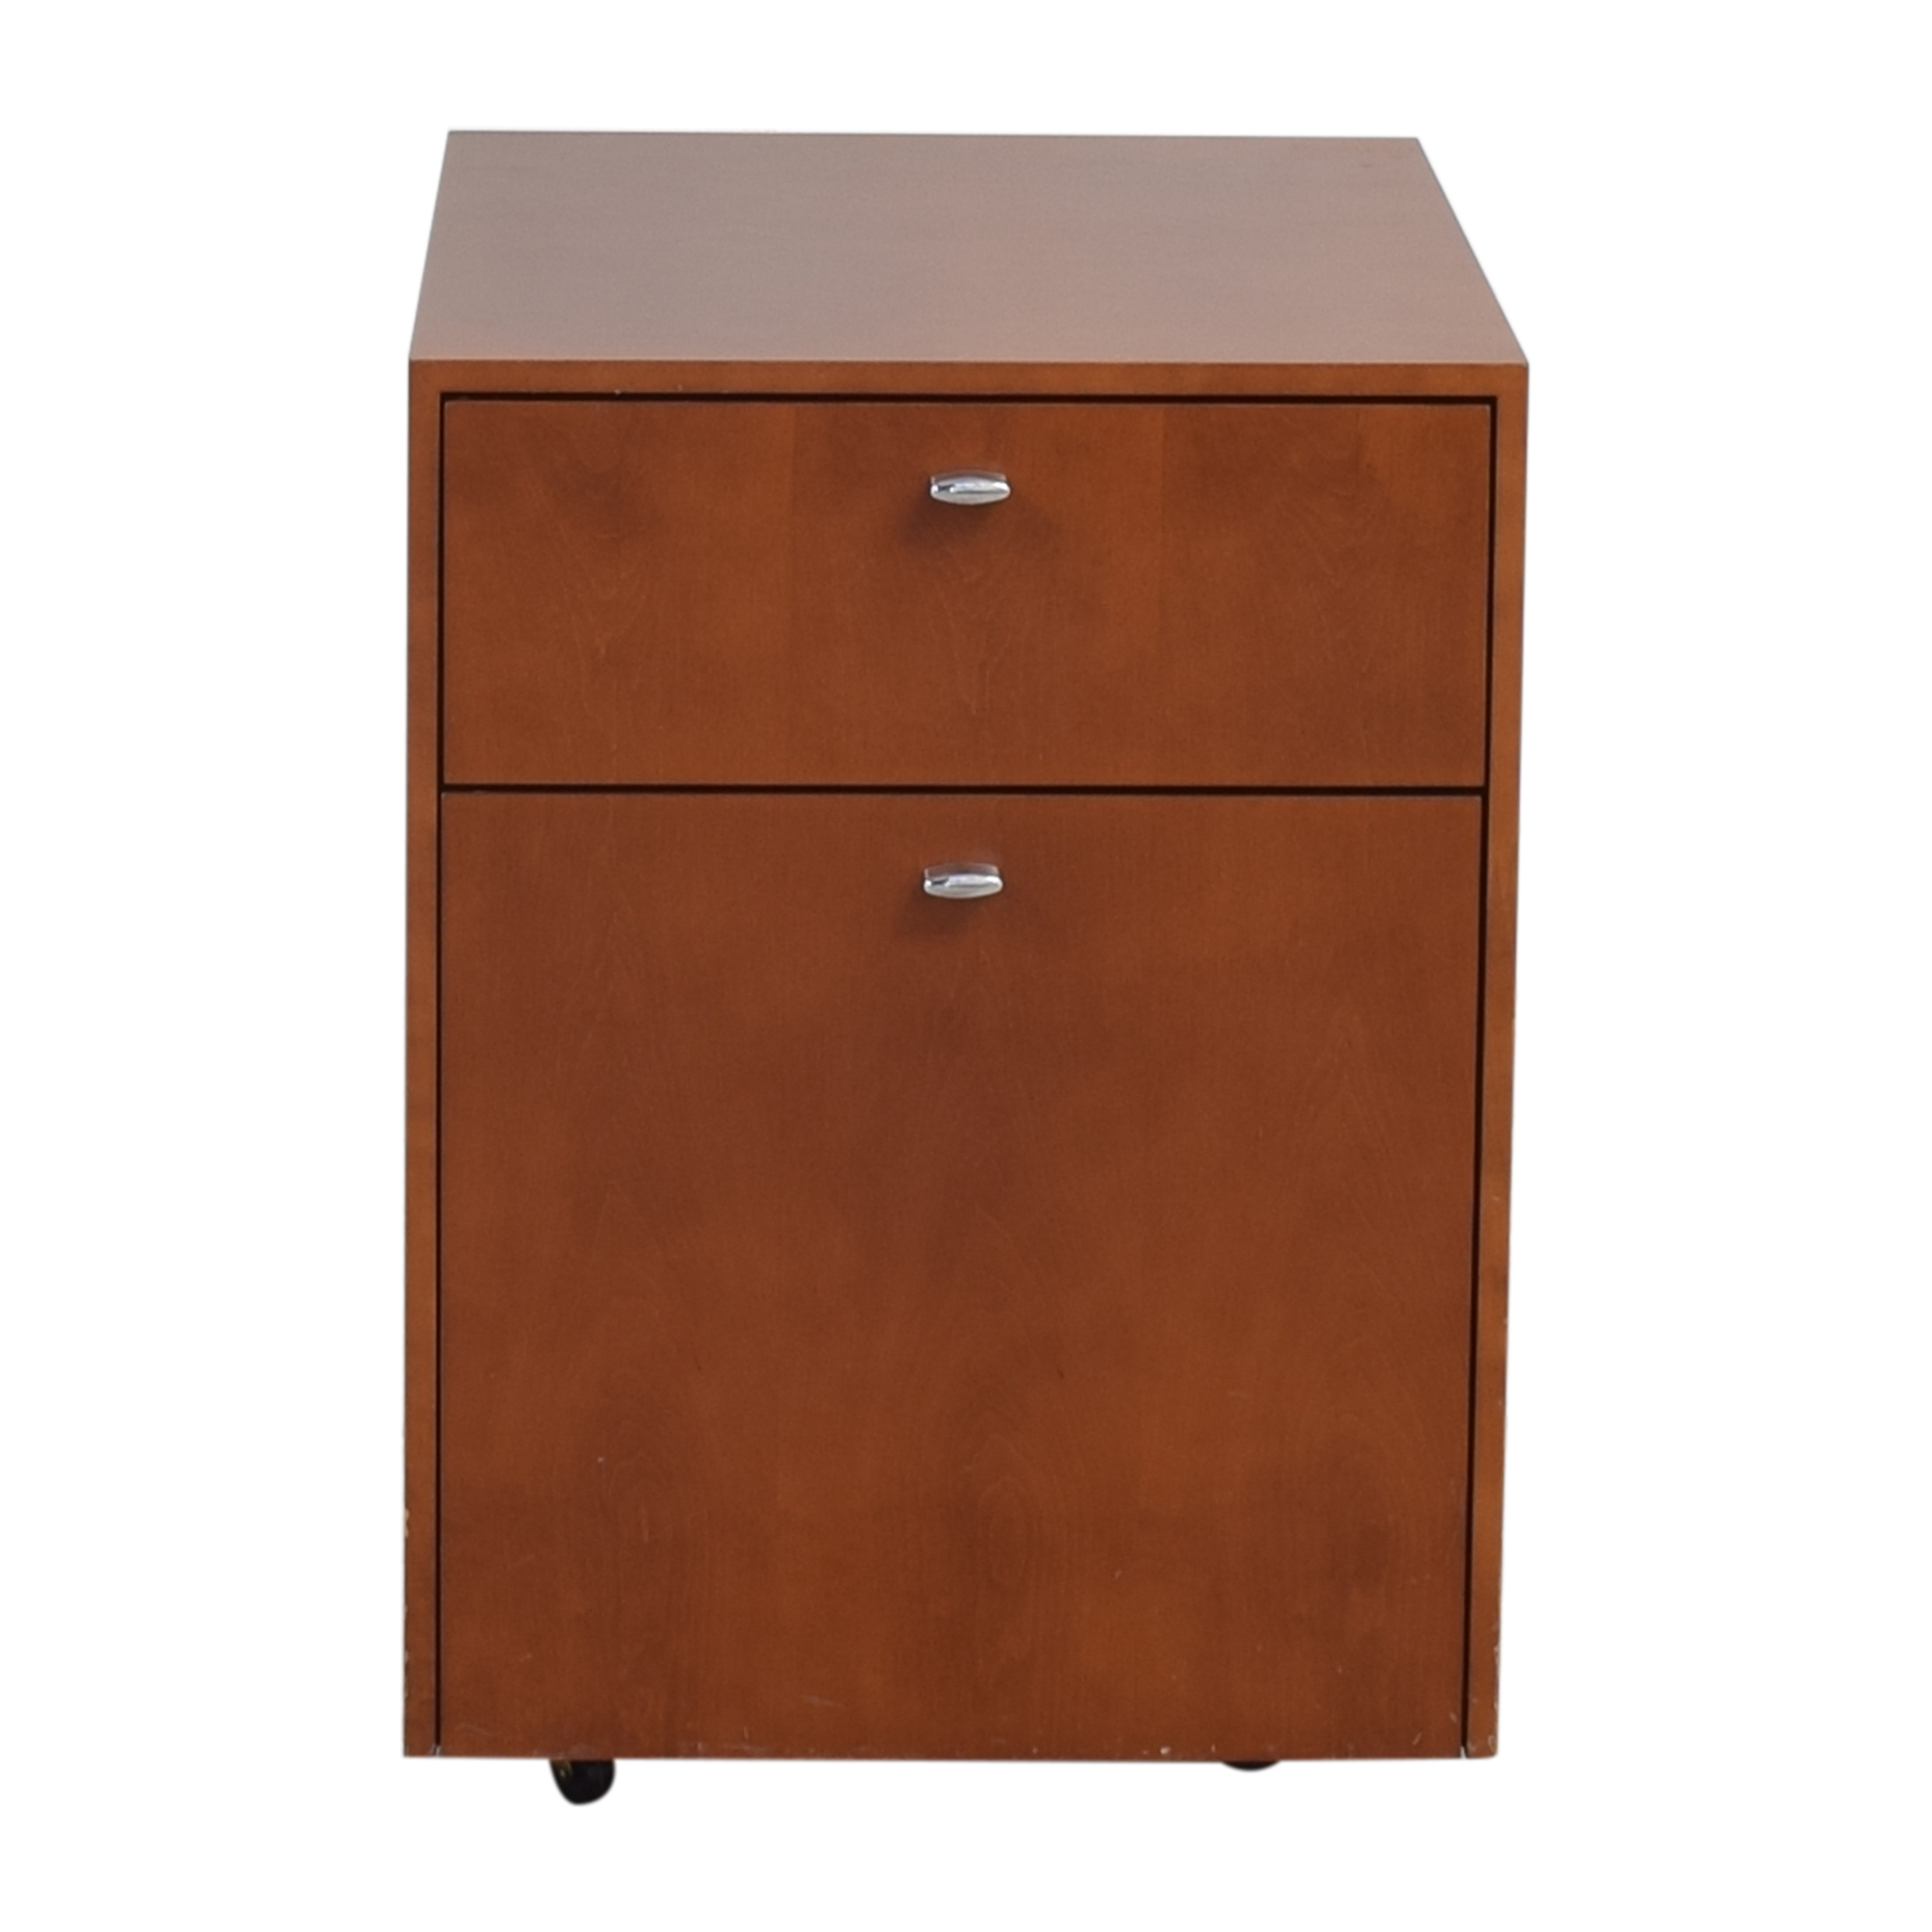 Maurice Villency Maurice Villency File Cabinet for sale